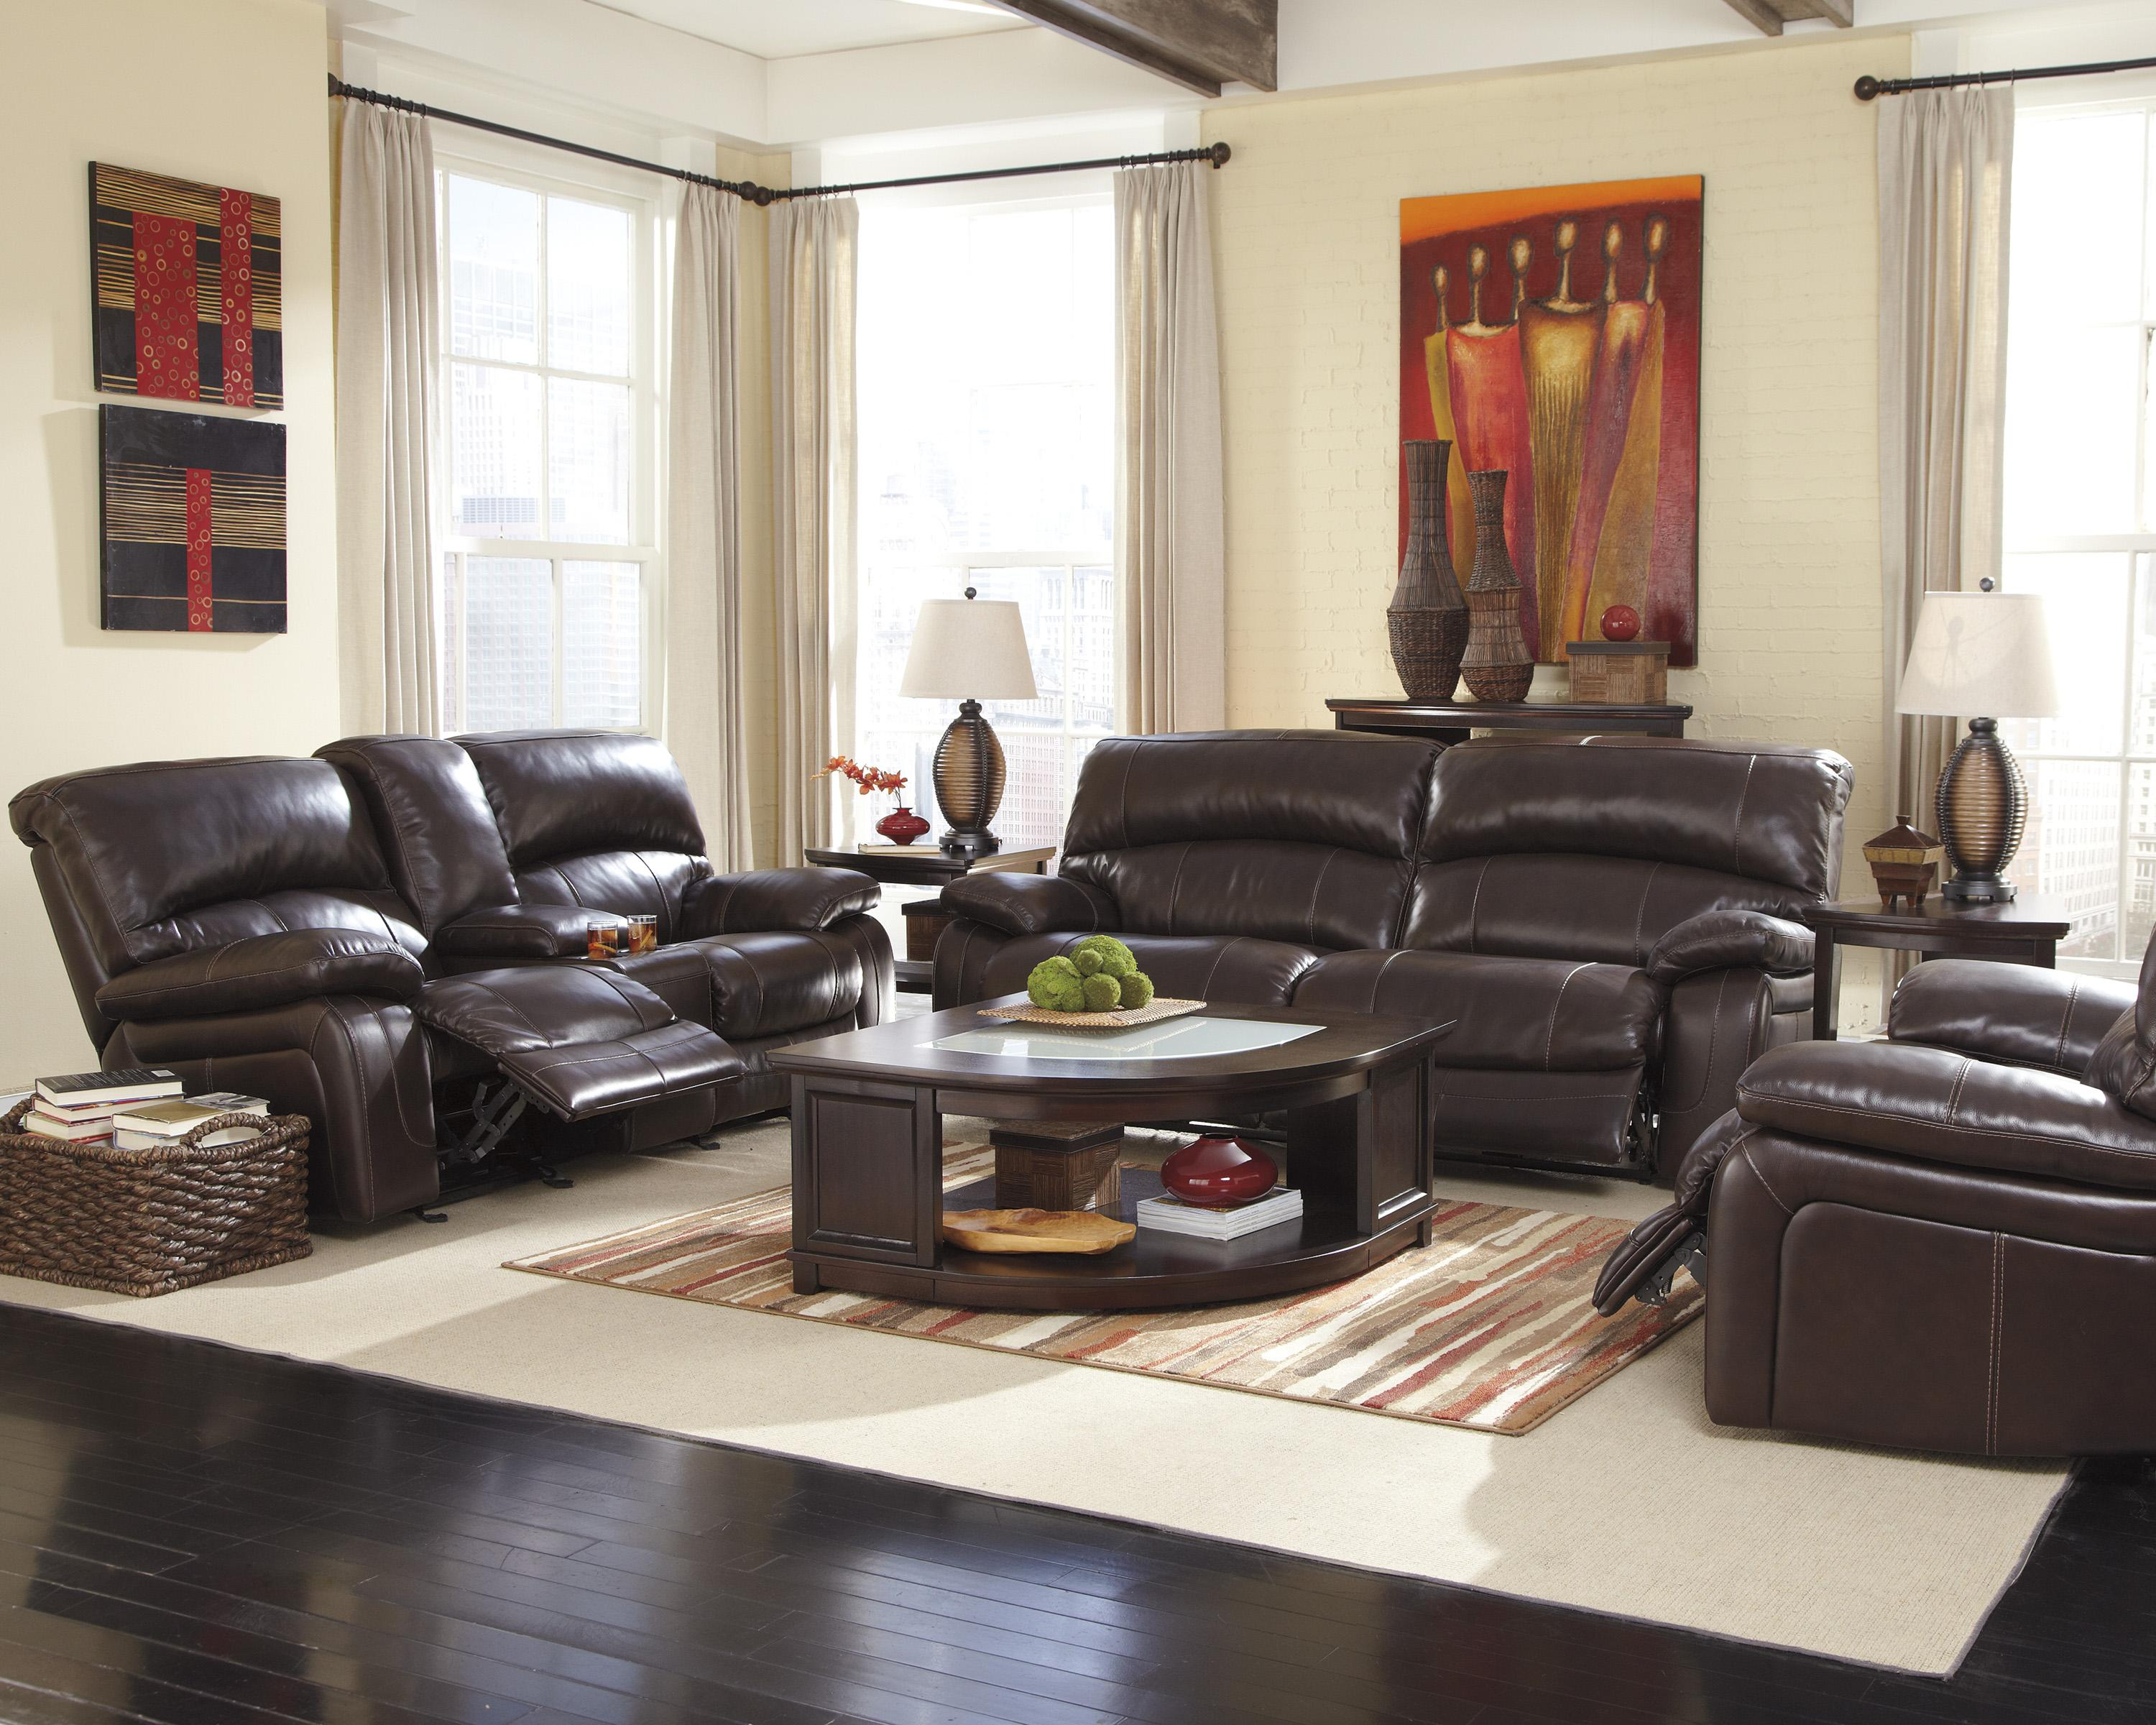 Signature Design by Ashley Damacio - Dark Brown Reclining Living Room Group - Item Number: U98200 Living Room Group 3